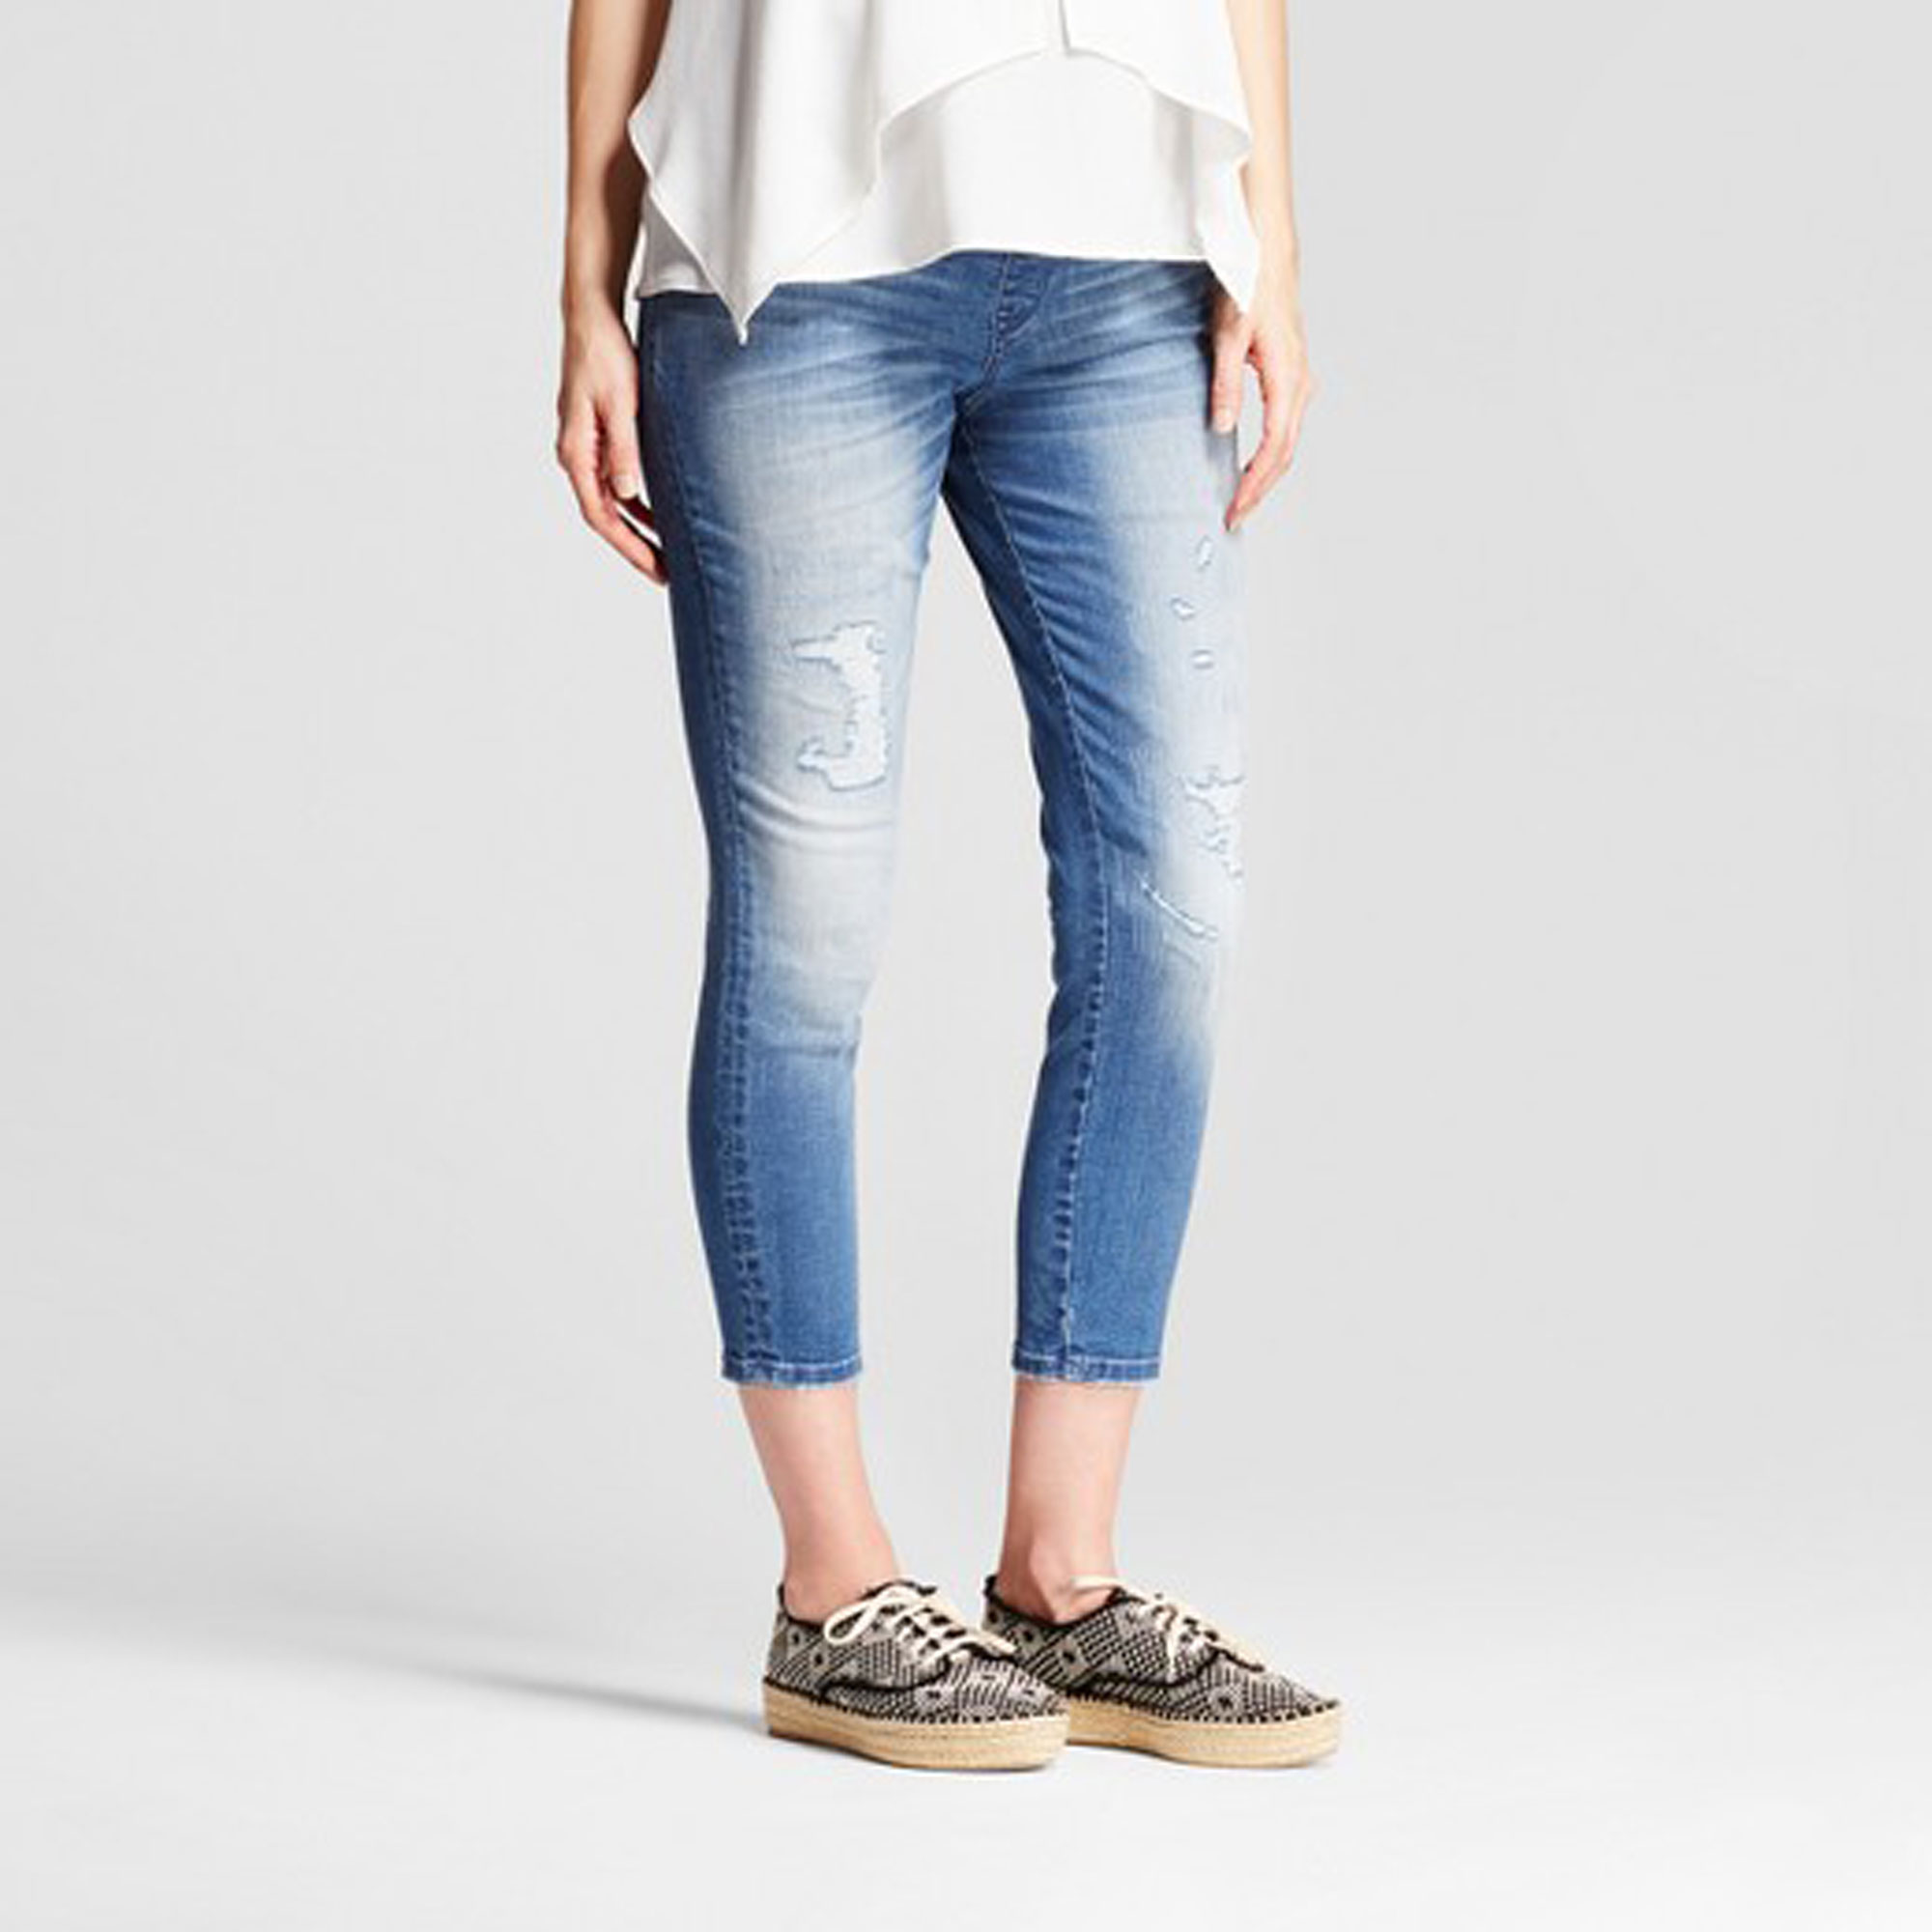 cropped-jeans-2000